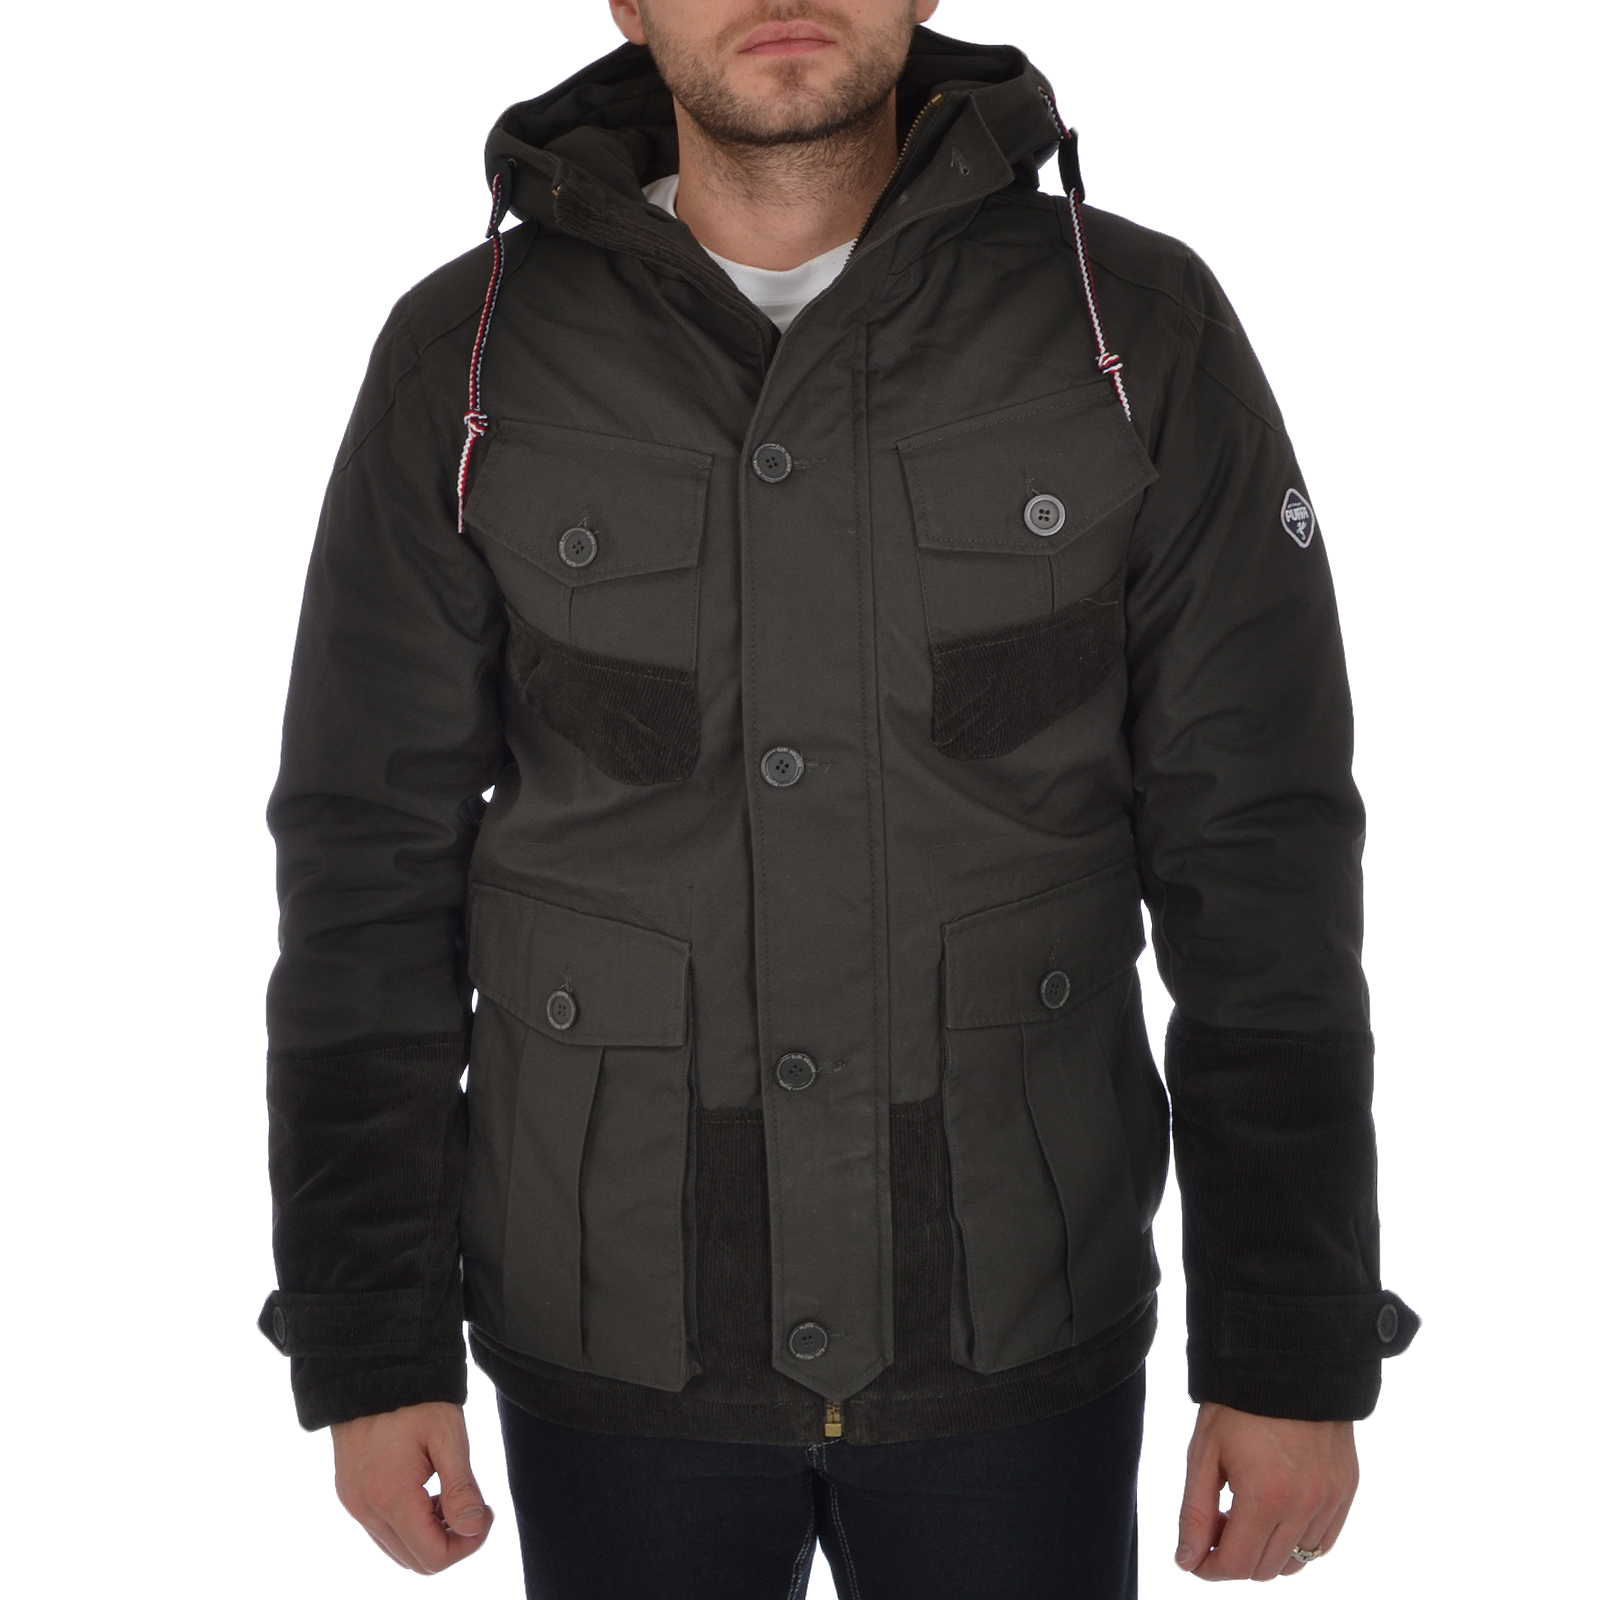 Puffa Mens Aiden Heavyweight Hooded Jacket Smart Casual Winter ...